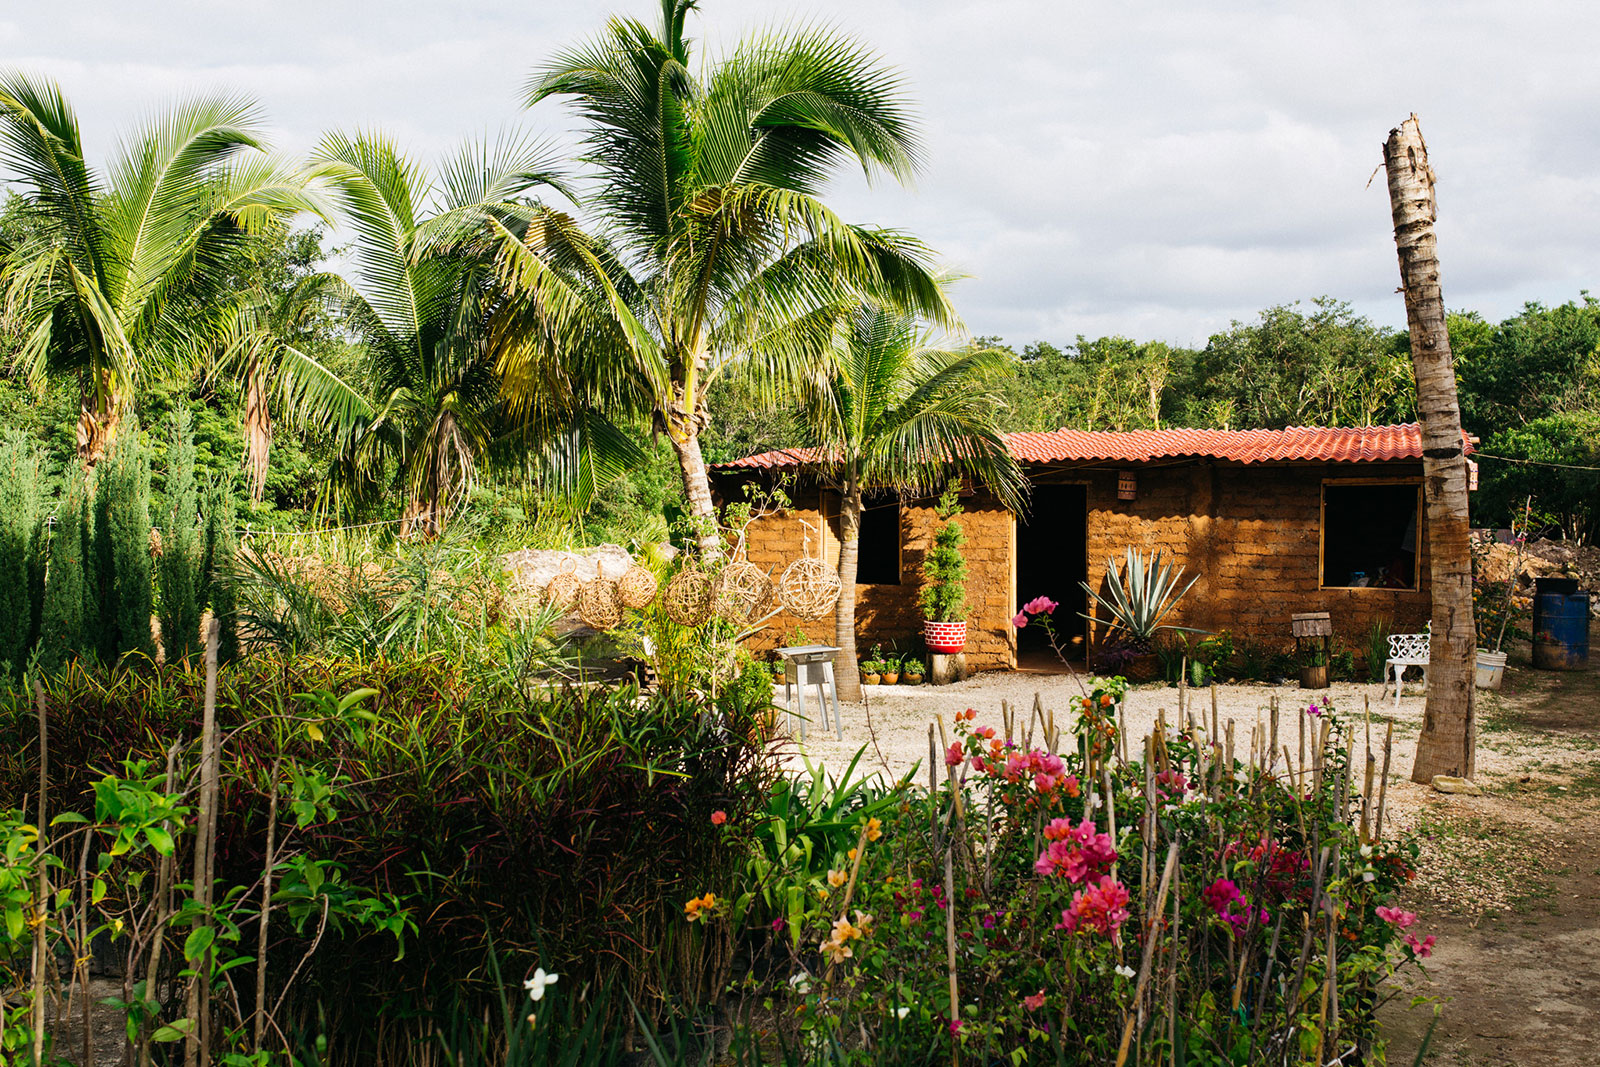 Maya_Luxe_Riviera_Maya_Luxury_Vacations_Magazine_Local_Stories_First_Ever_House_Built_From_Seaweed_26.jpg